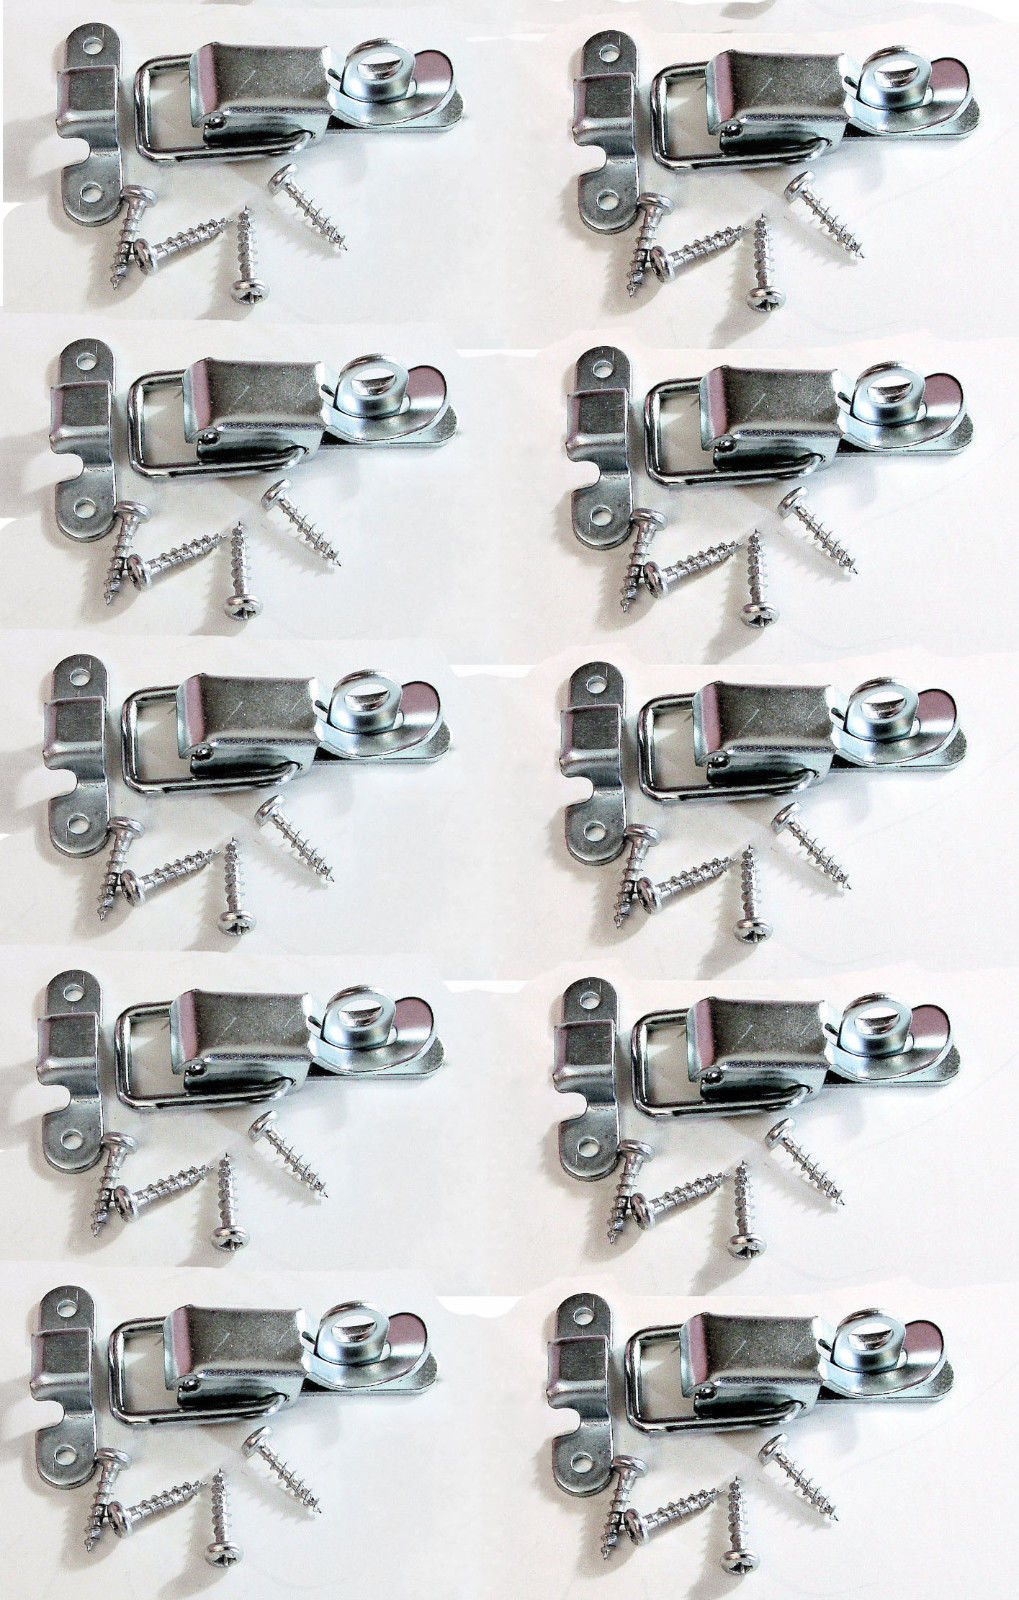 10 Pack Small Penn Elcom 0525 Padlockable Draw Latch w/Screws-Zinc Finish